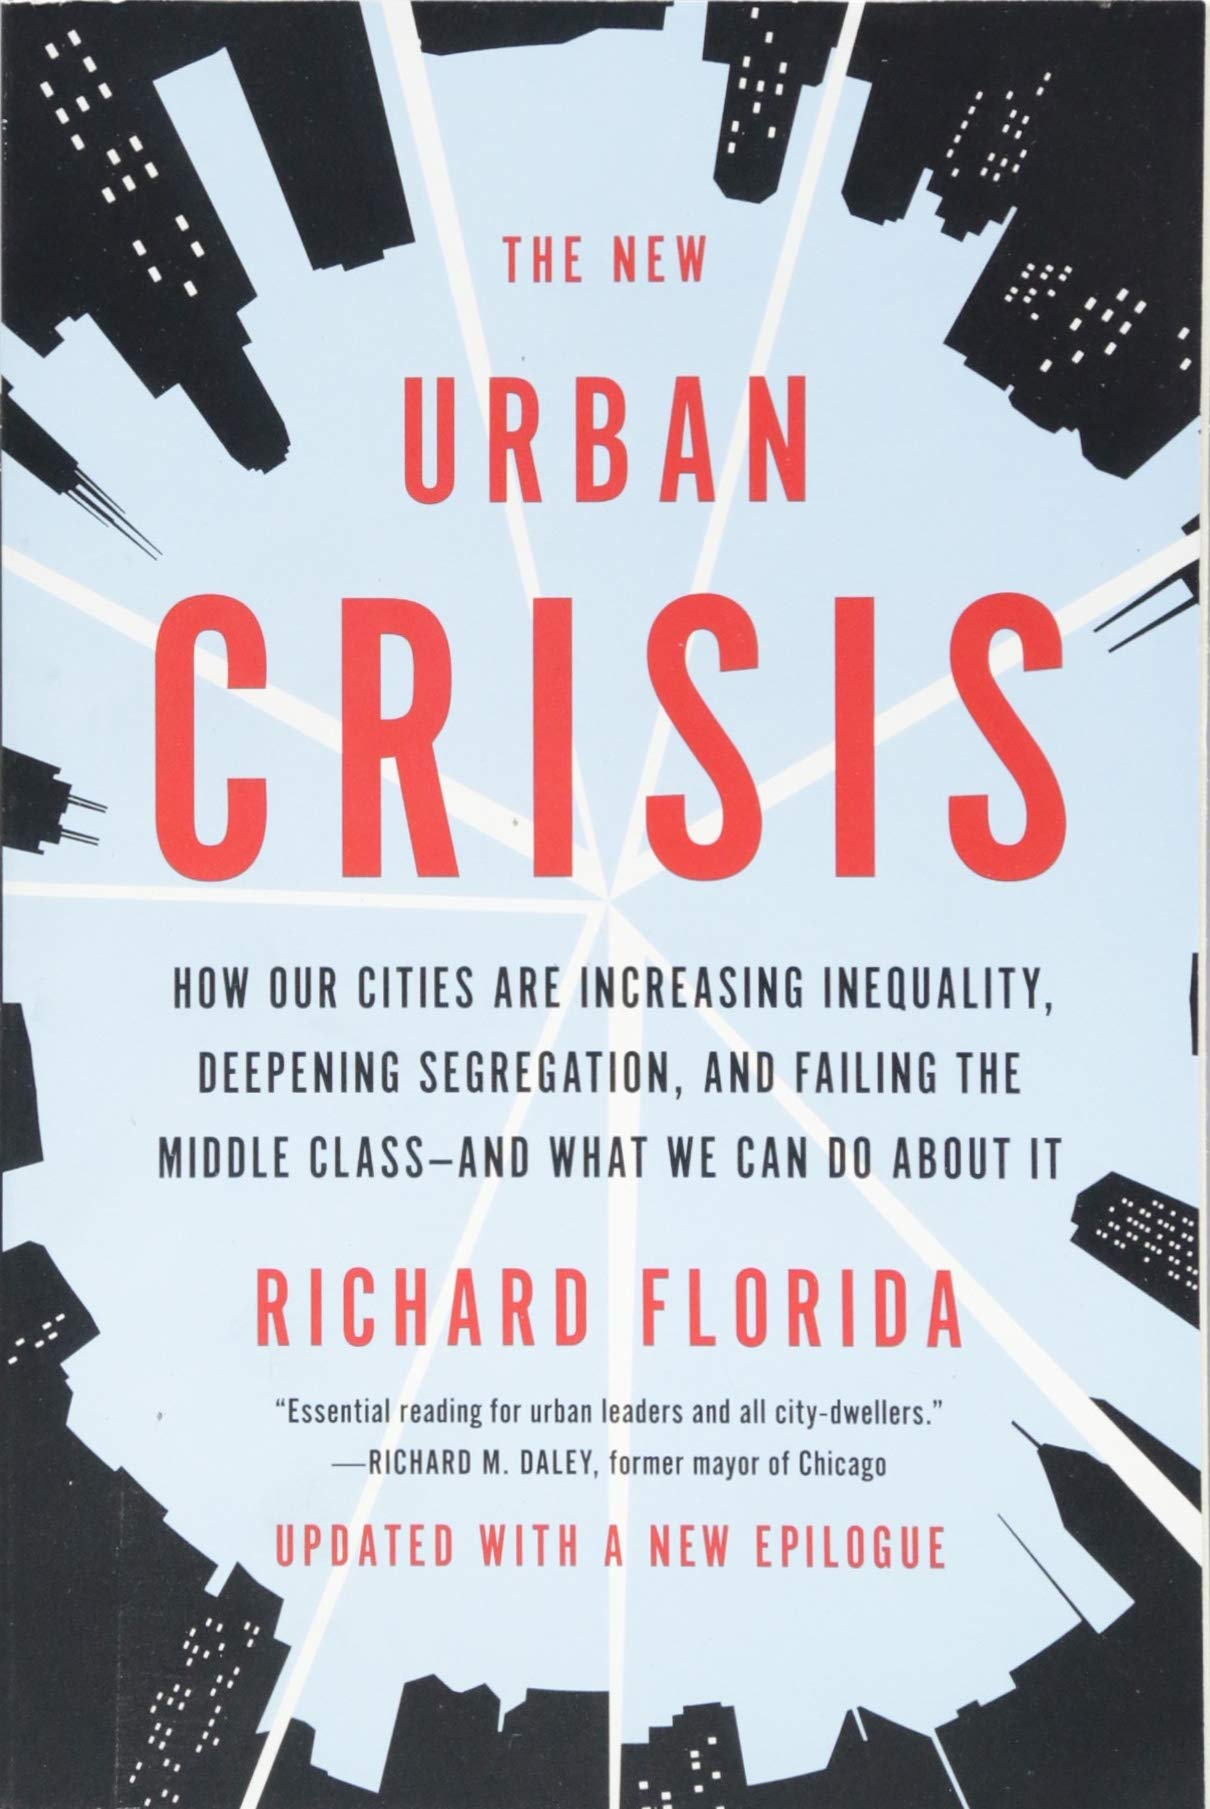 The New Urban Crisis: How Our Cities Are Increasing Inequality, Deepening Segregation, and Failing the Middle Class-And What We Can Do about.